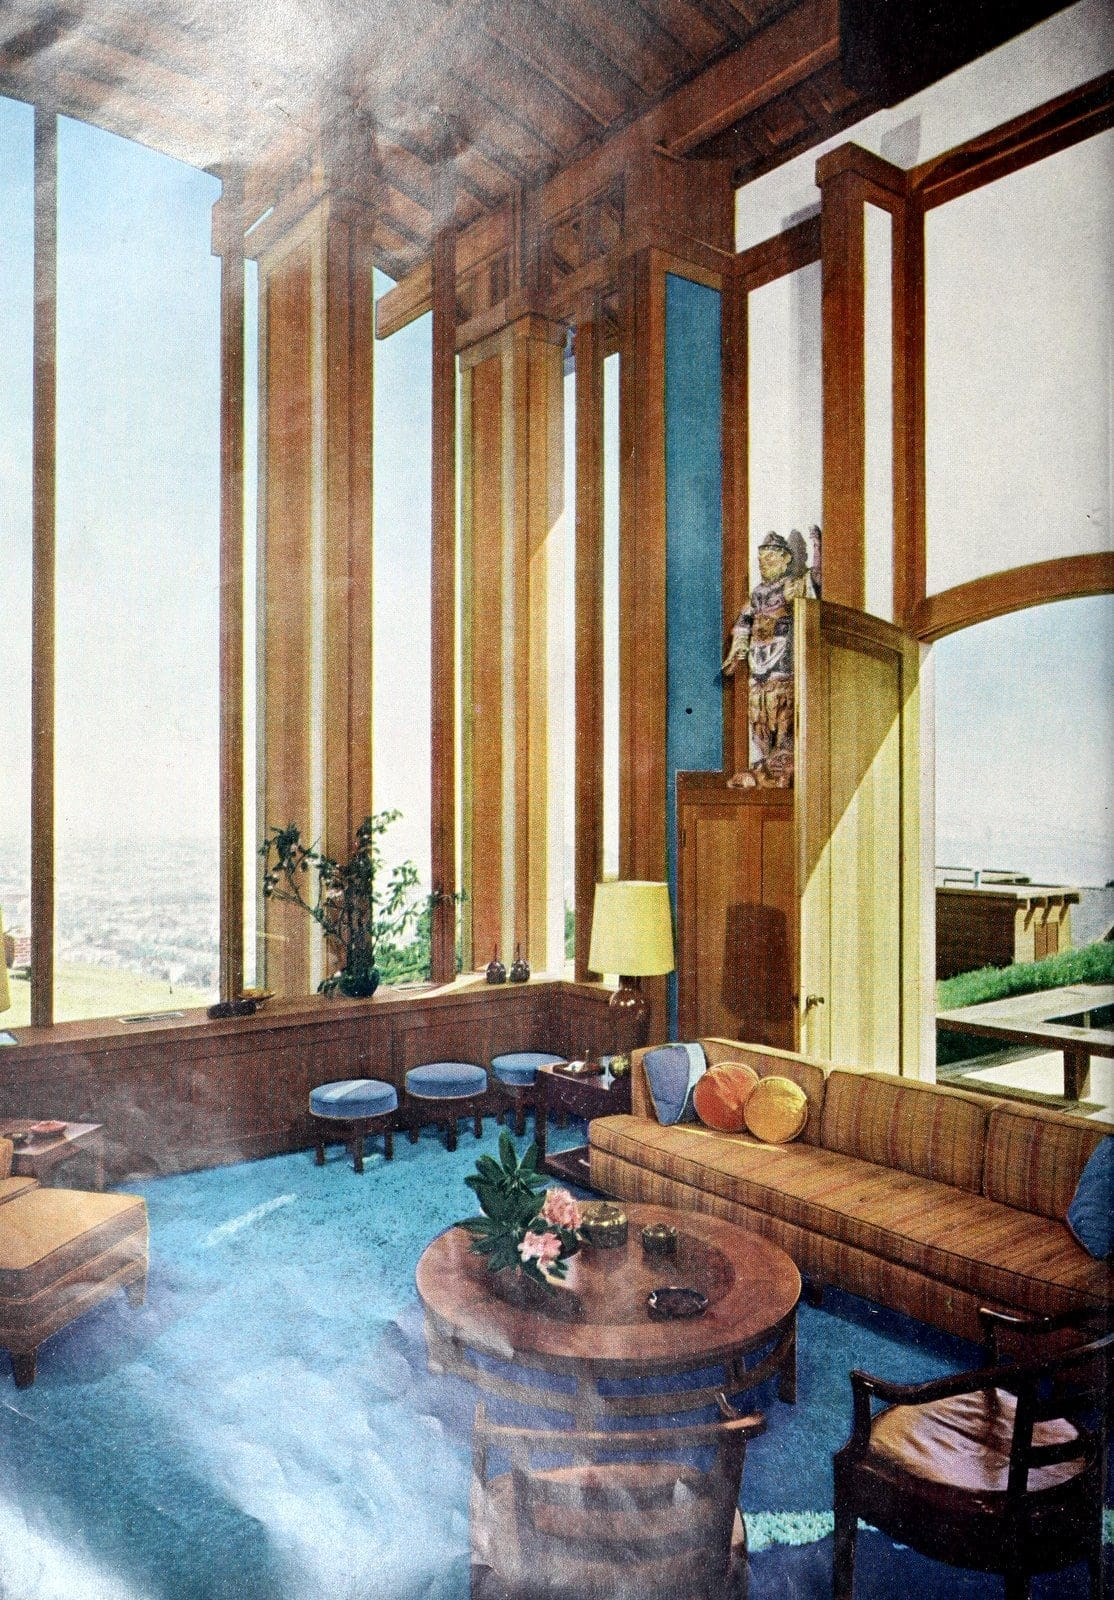 Super high vintage living room ceilings with a view - 60s home decor (1962)